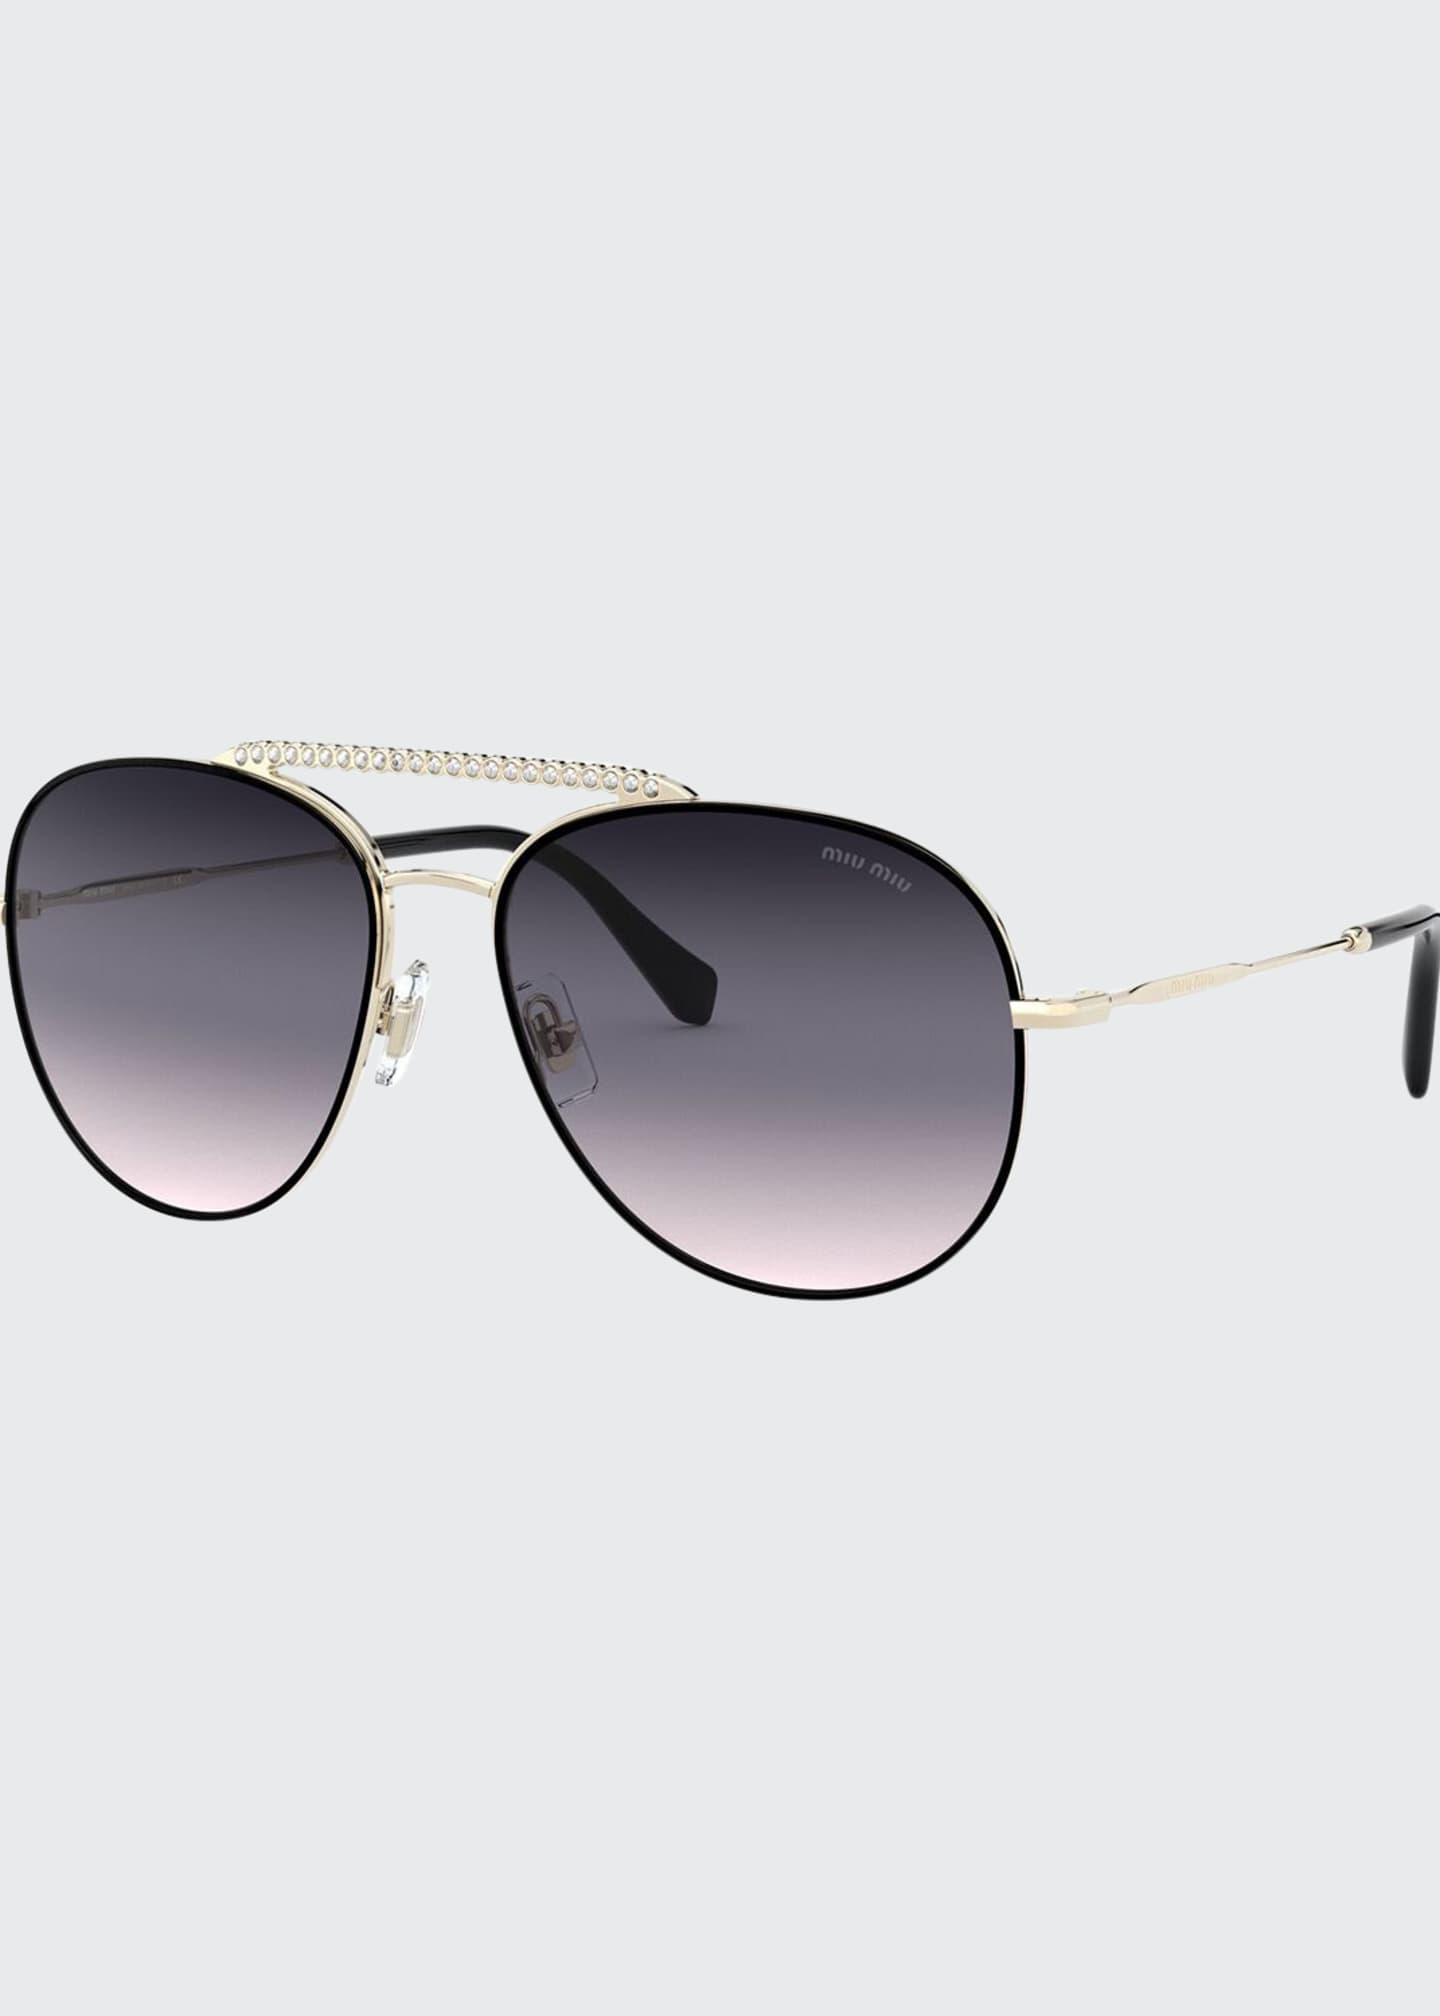 Miu Miu Mirrored Metal Aviator Sunglasses